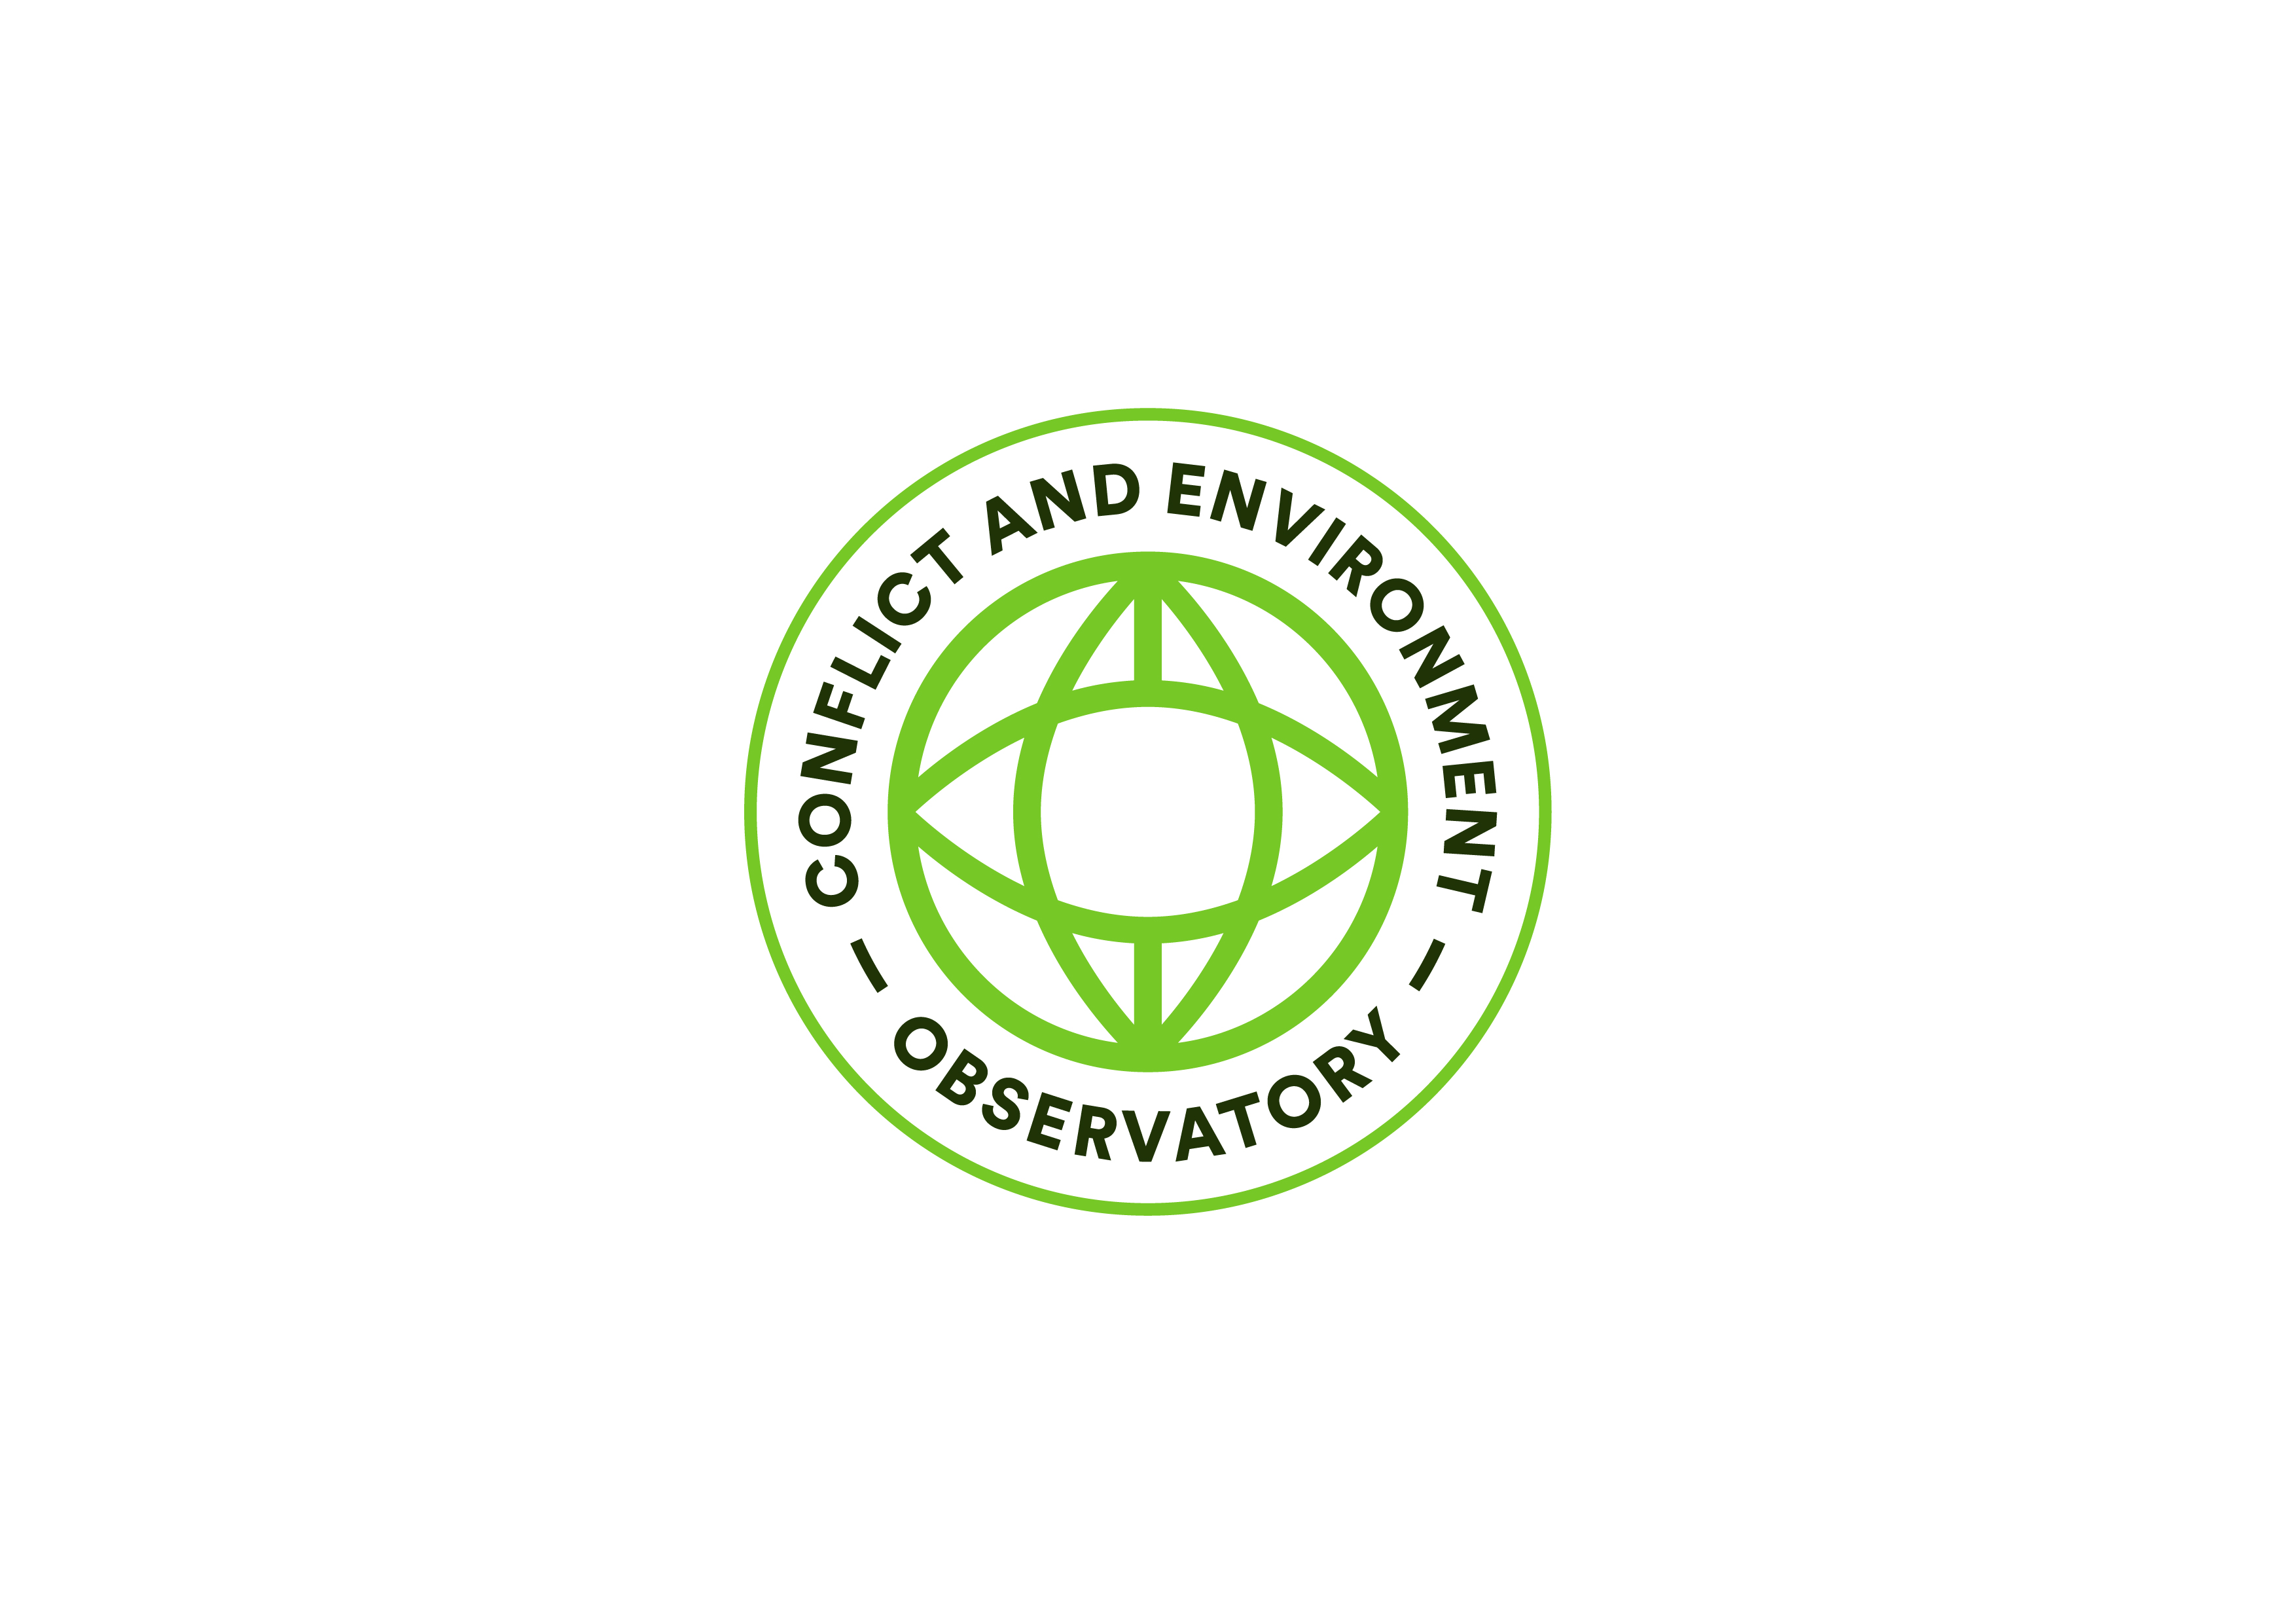 Conflict & Environment Observatory